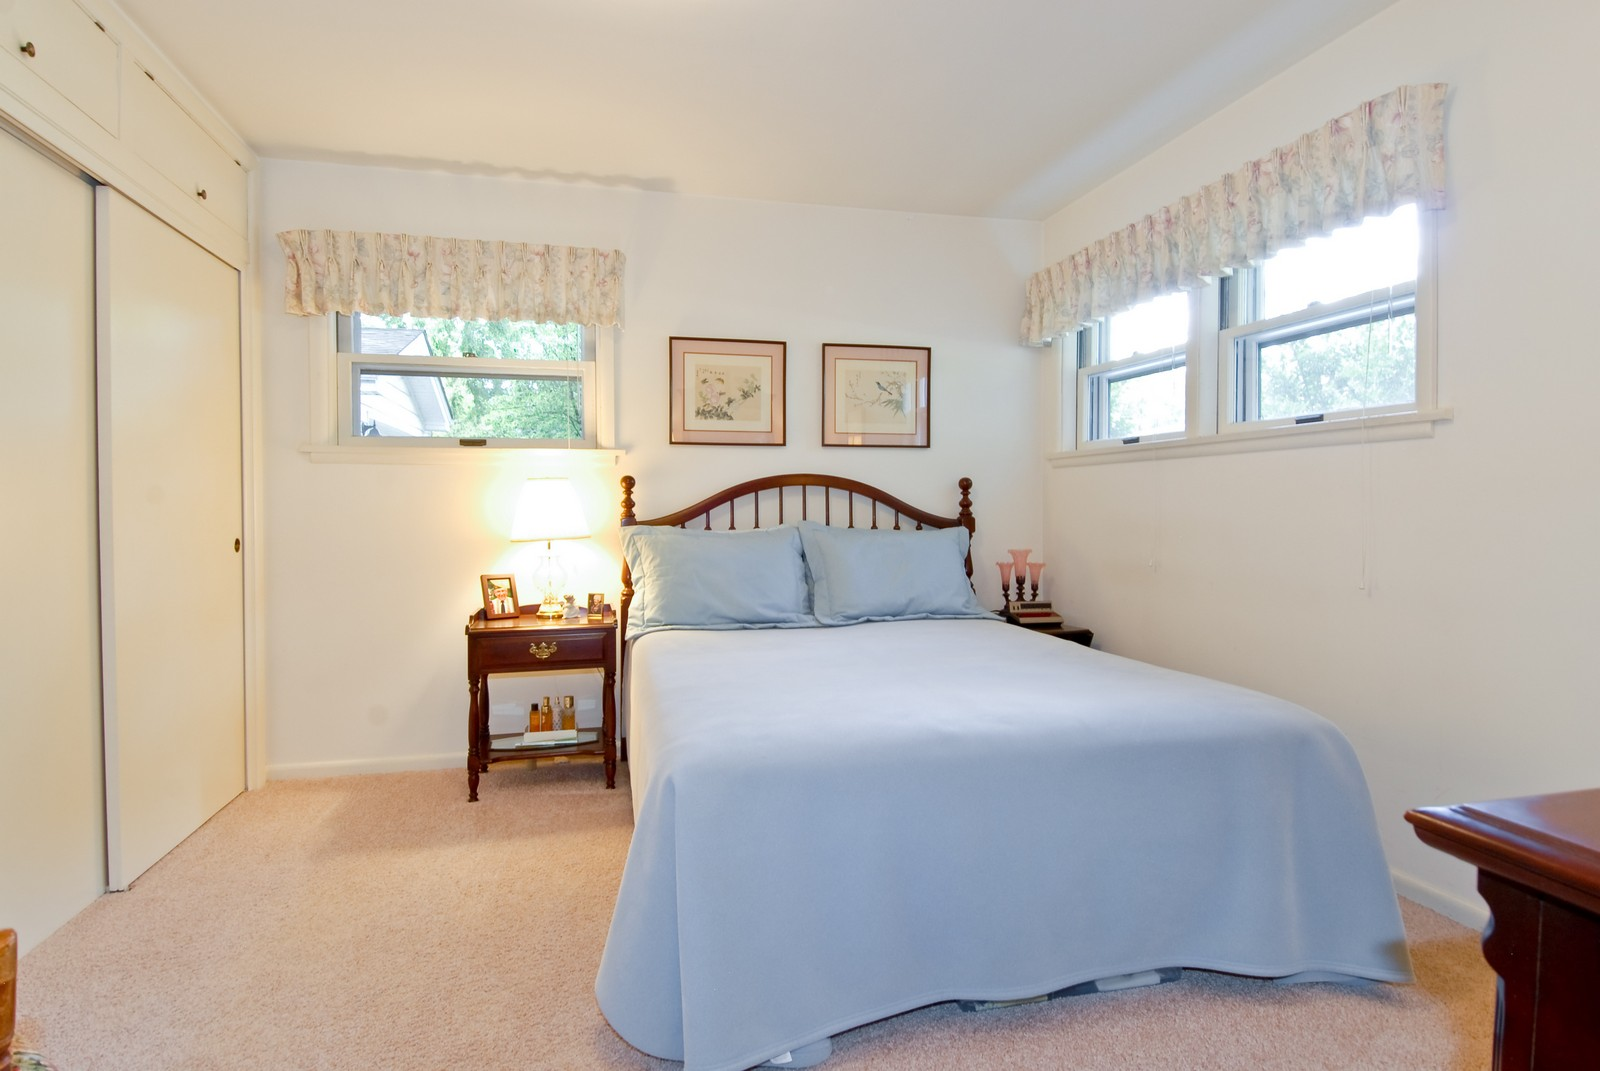 Real Estate Photography - 525 S McKinley St, St Charles, IL, 60174 - Master Bedroom